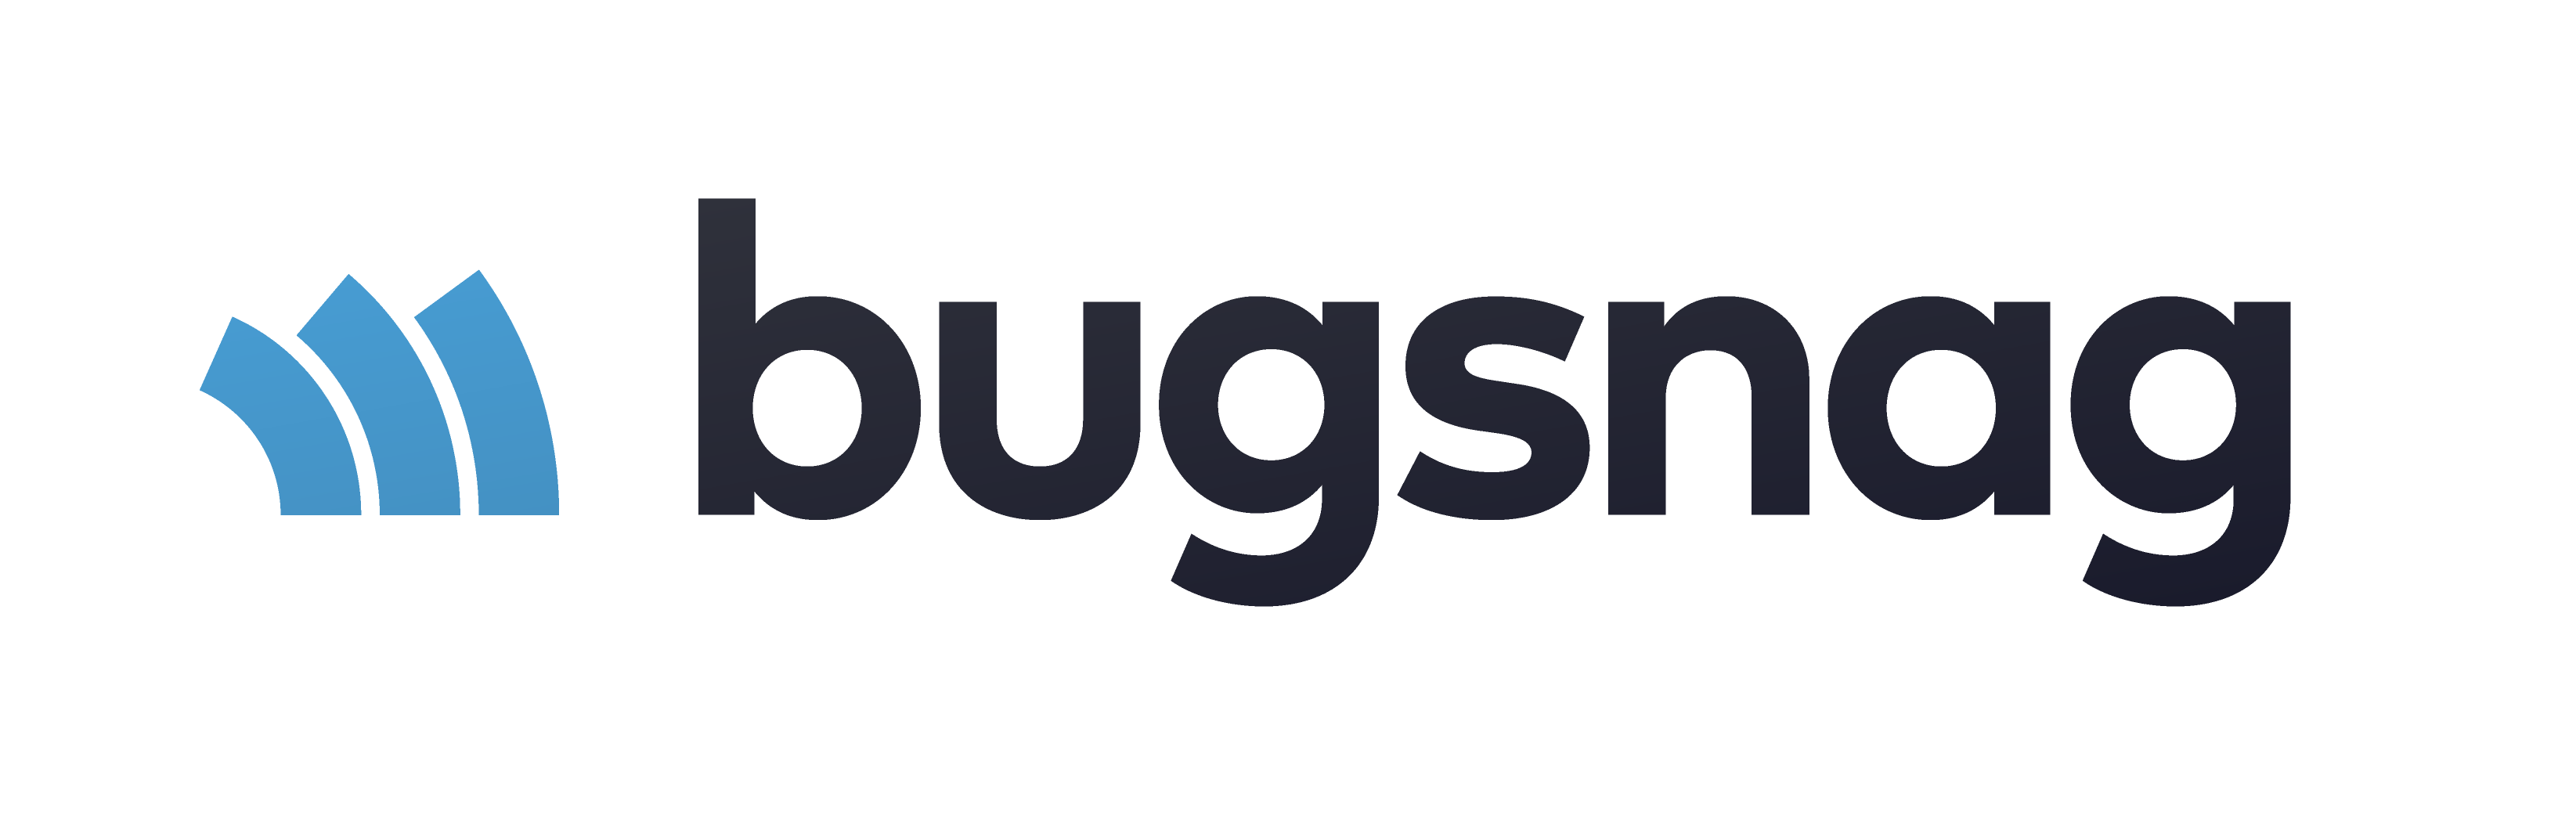 Bugsnag Nabs $7.2 Million in Series A Funding Led By Benchmark | TechCrunch